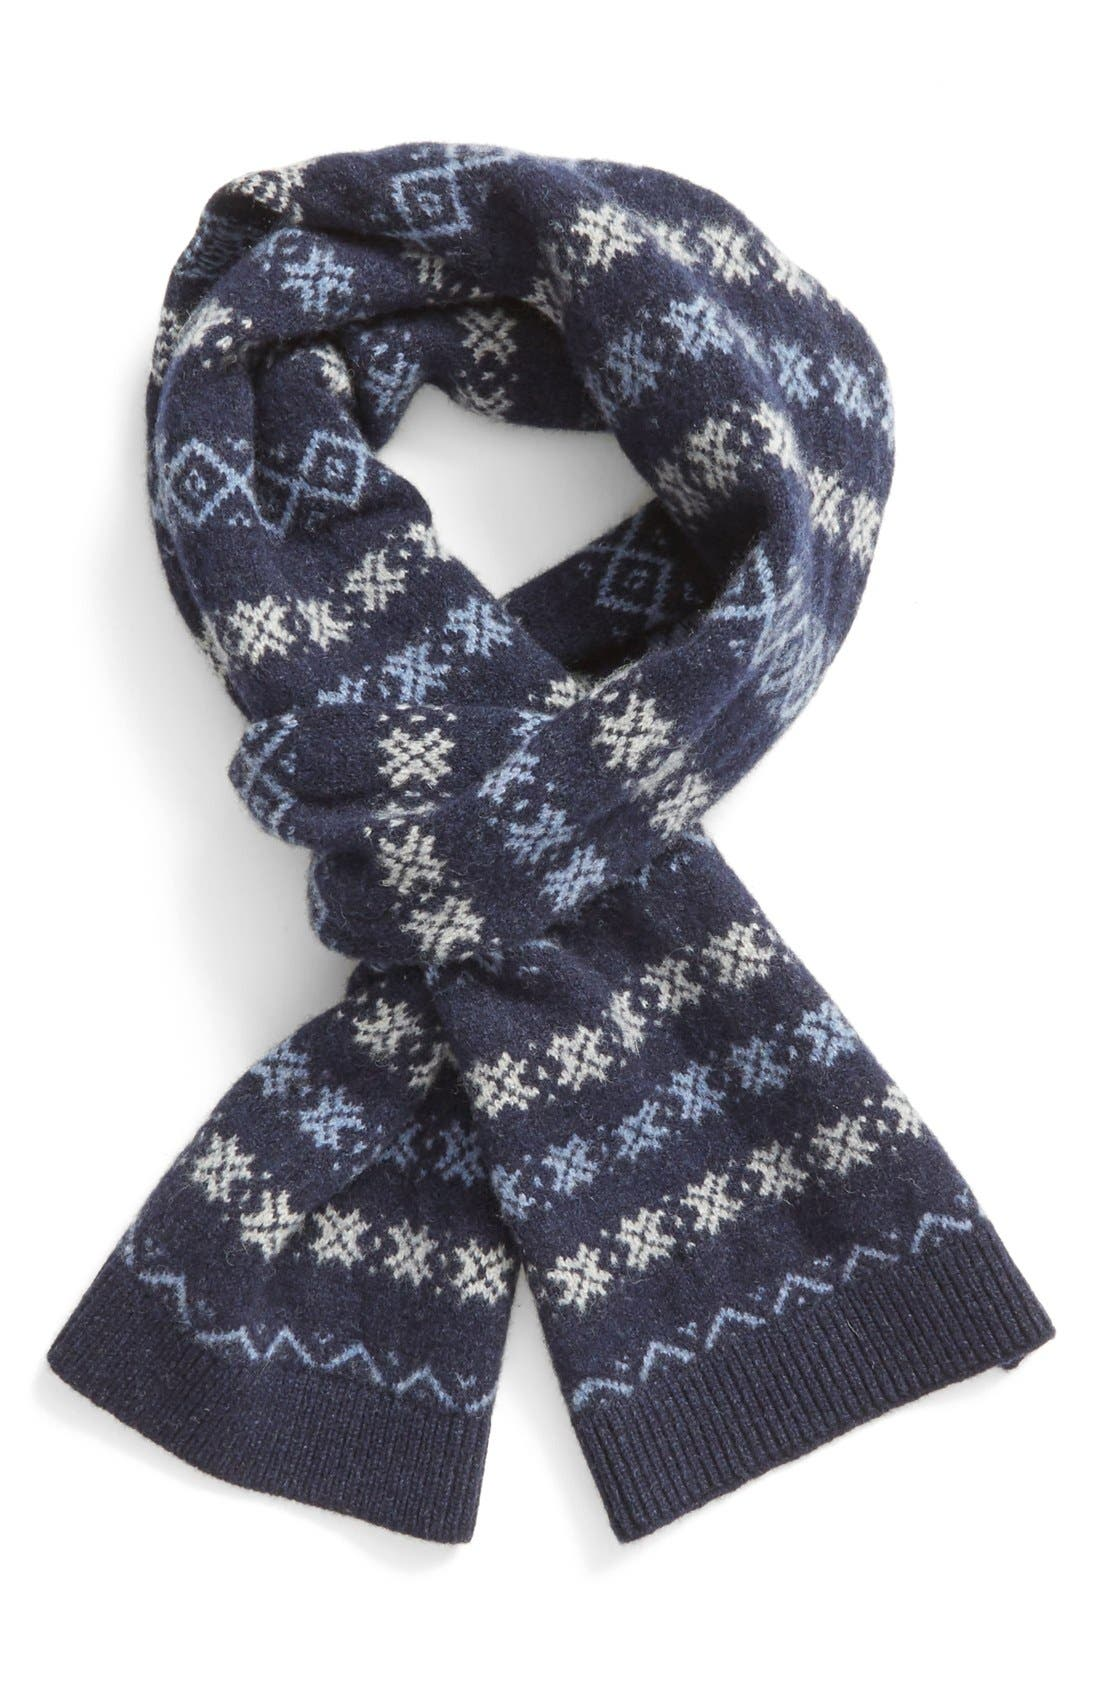 Barbour 'Martingale' Fair Isle Wool Scarf | Nordstrom